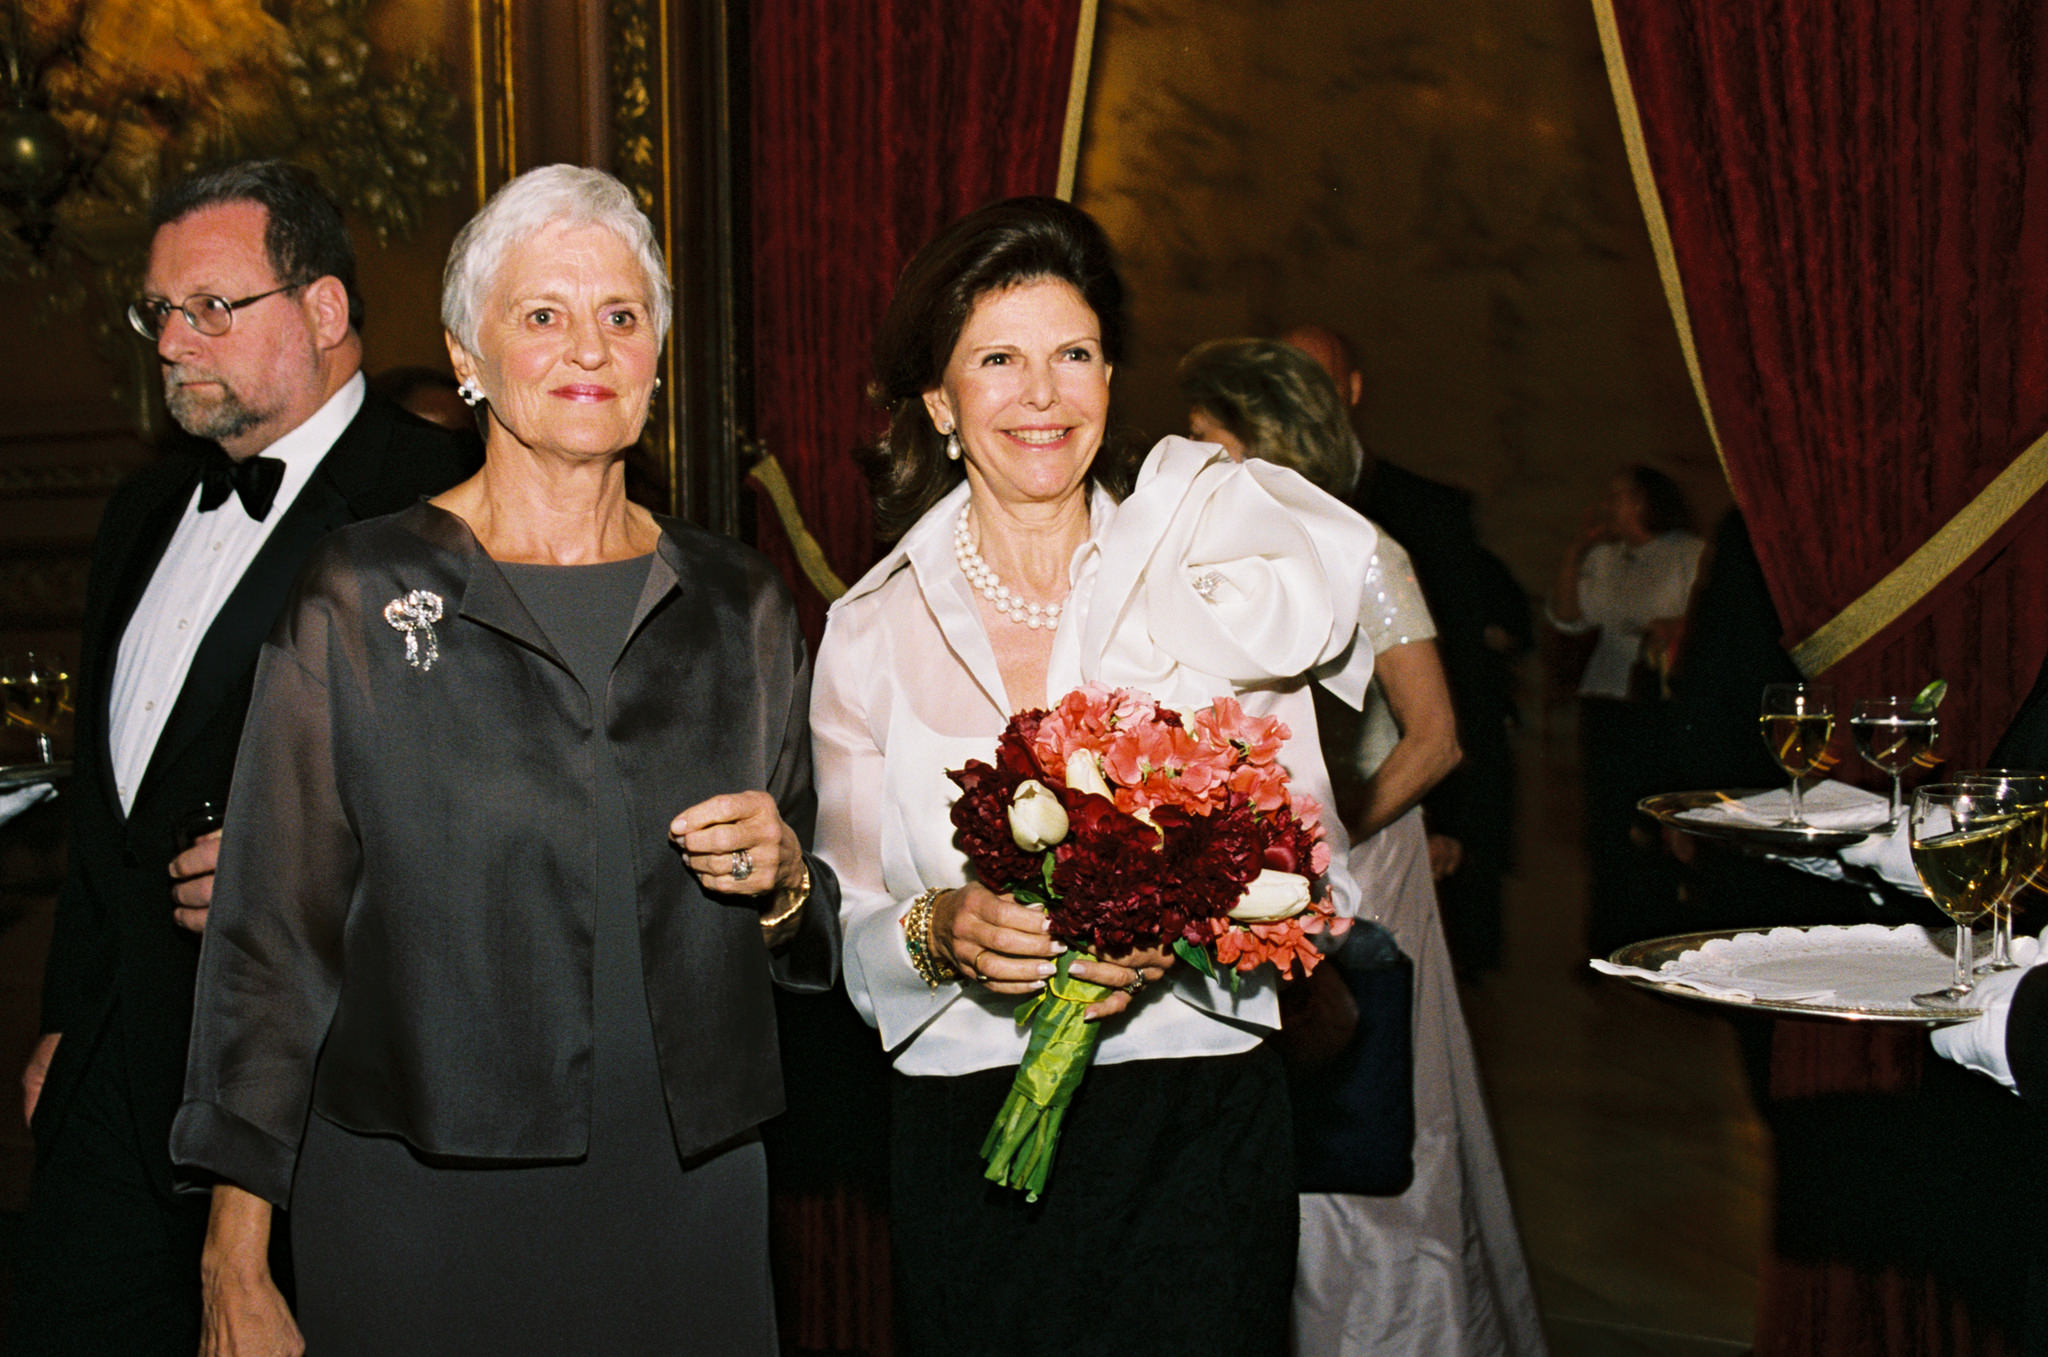 Long time supporter and Childhood USA Board Member, Monika Heimbold with H.M. Queen Silvia of Sweden at Childhood USA's 2005 Gala.